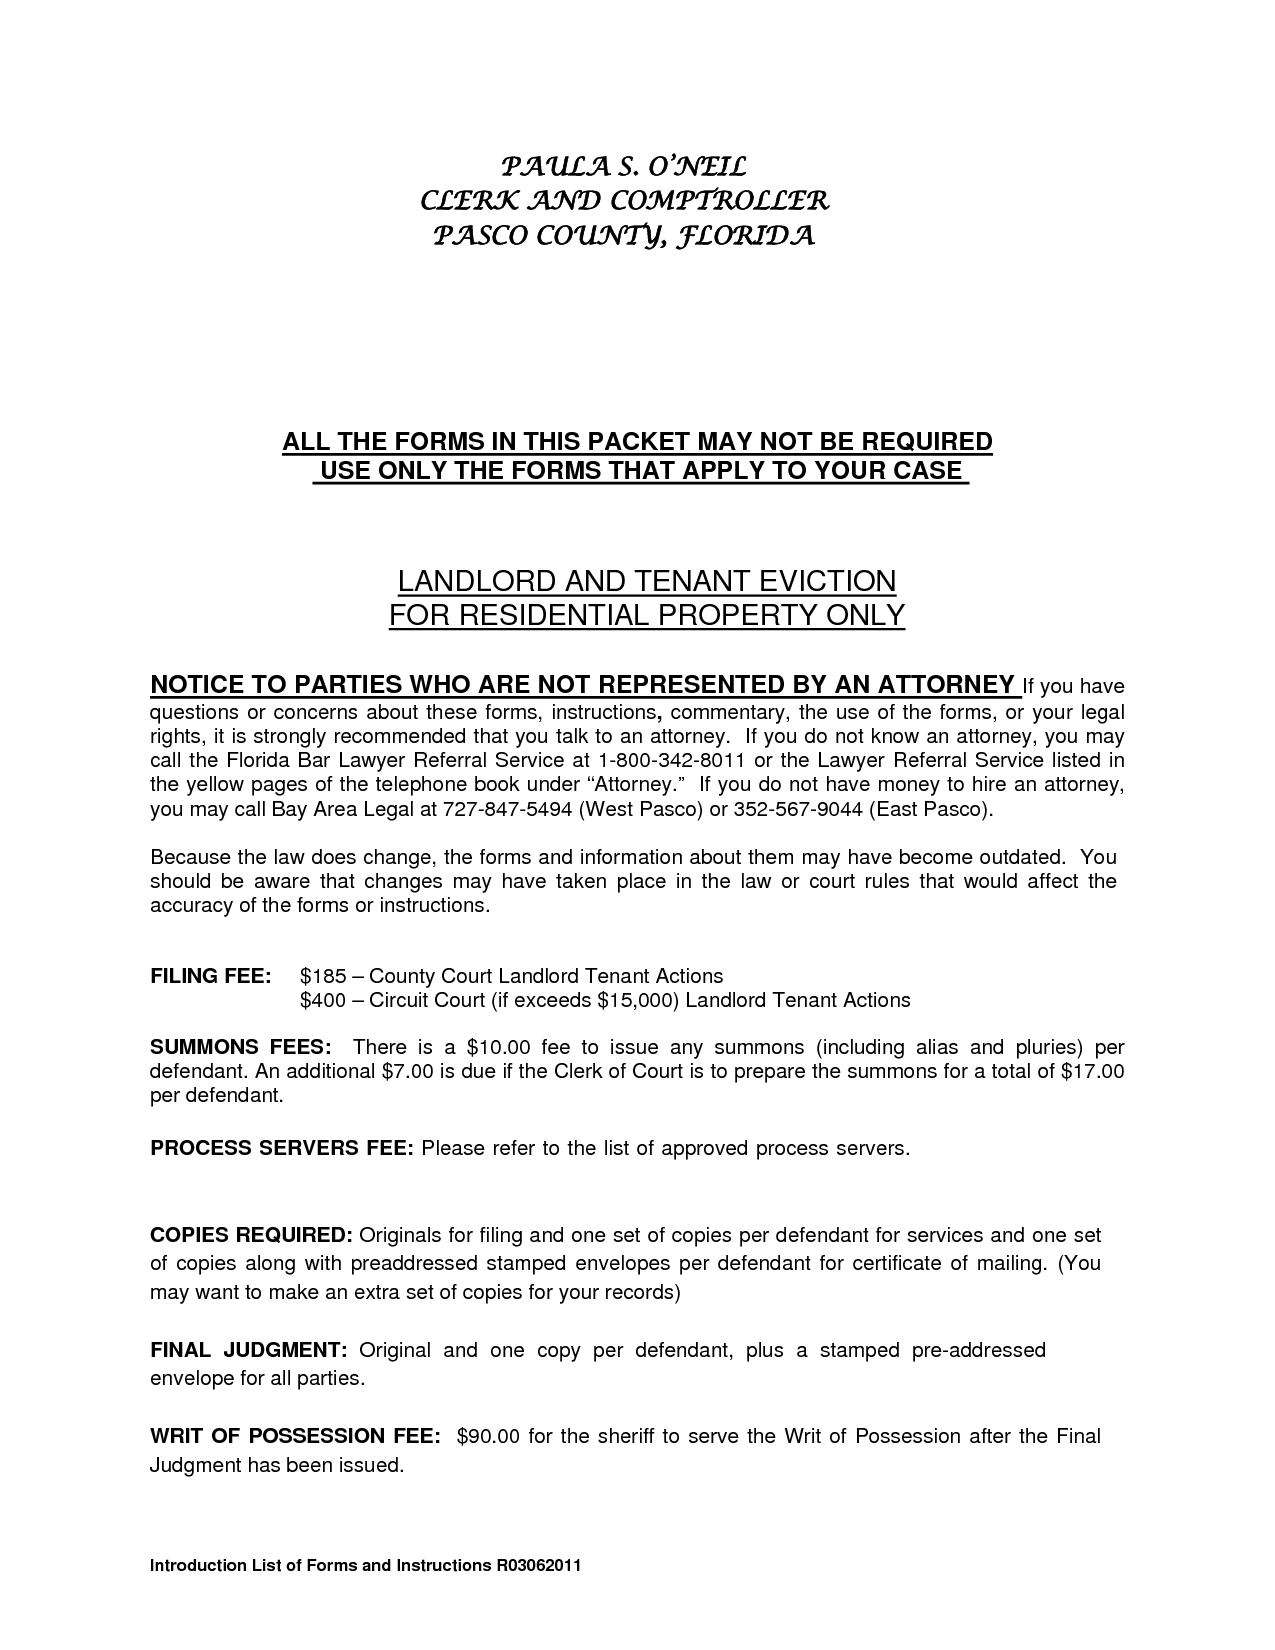 landlord eviction letter template example-Residential Landlord Tenant Eviction Notice Form by ere tenant eviction letter 8-m